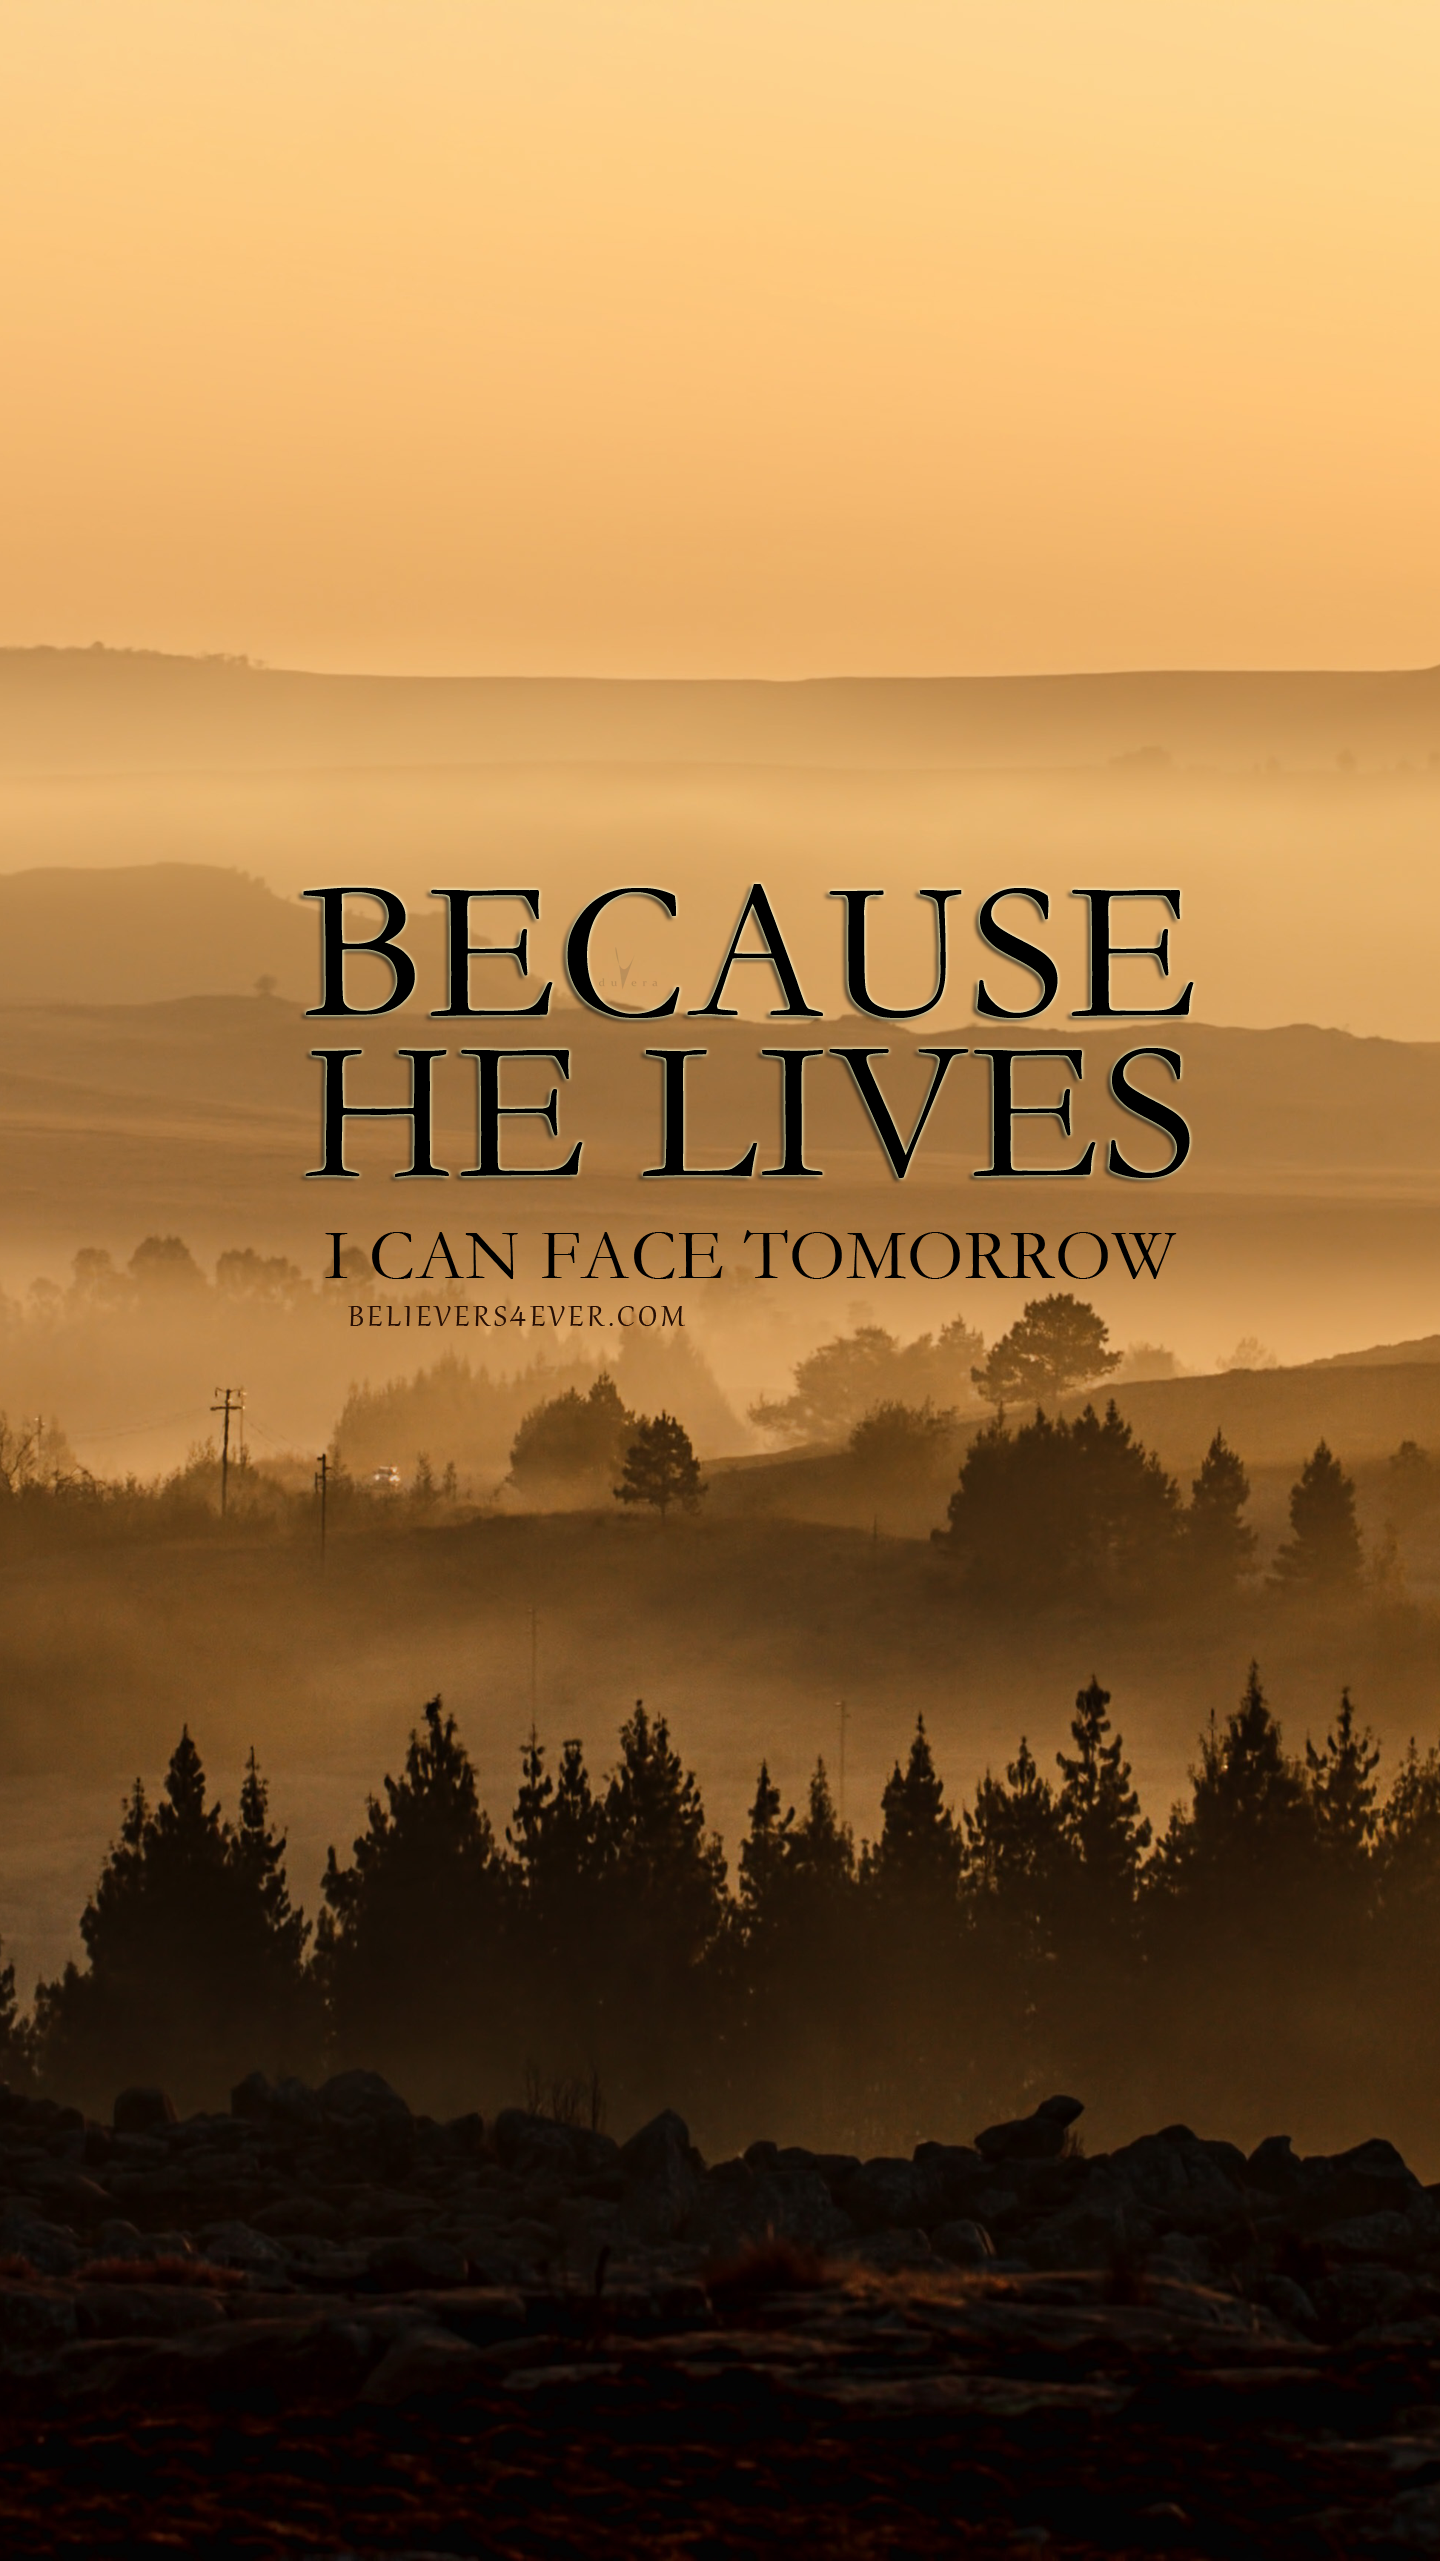 Because He lives, I can face tomorrow, christian mobile wallpaper, Christian mobile lockscreen wallpaper